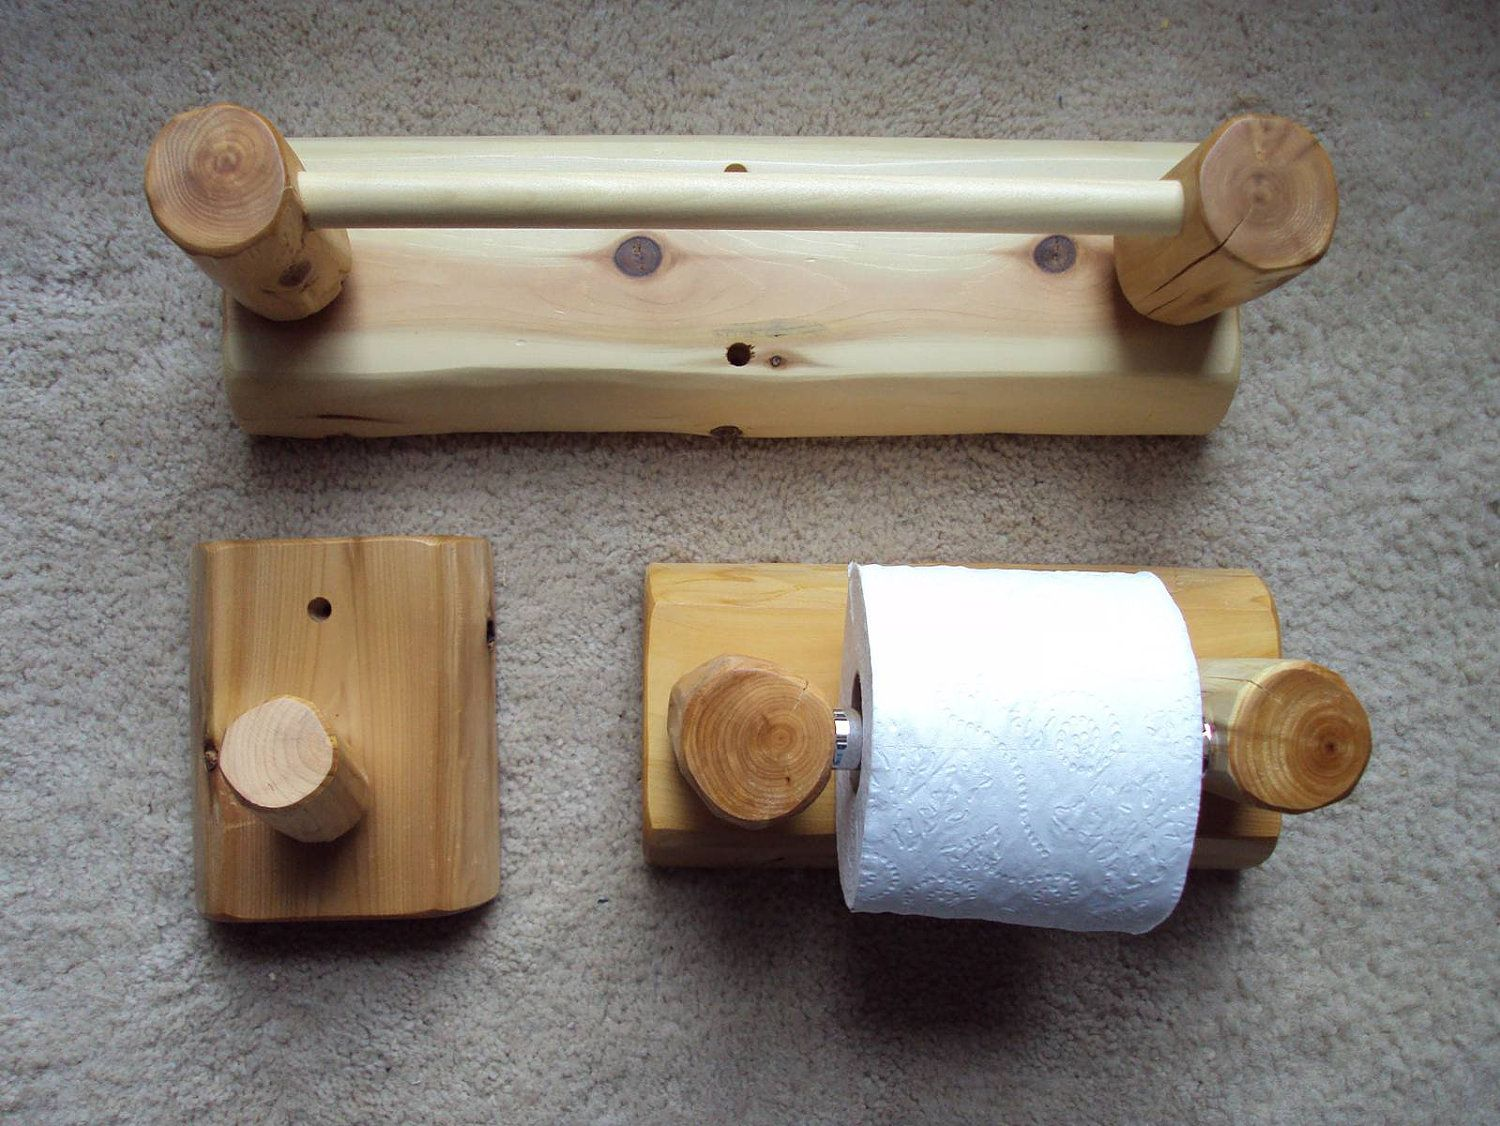 Rustic Bathroom Set Towel Bar Toilet Paper Holder Towel Rack - Bathroom towel bars and toilet paper holders for bathroom decor ideas